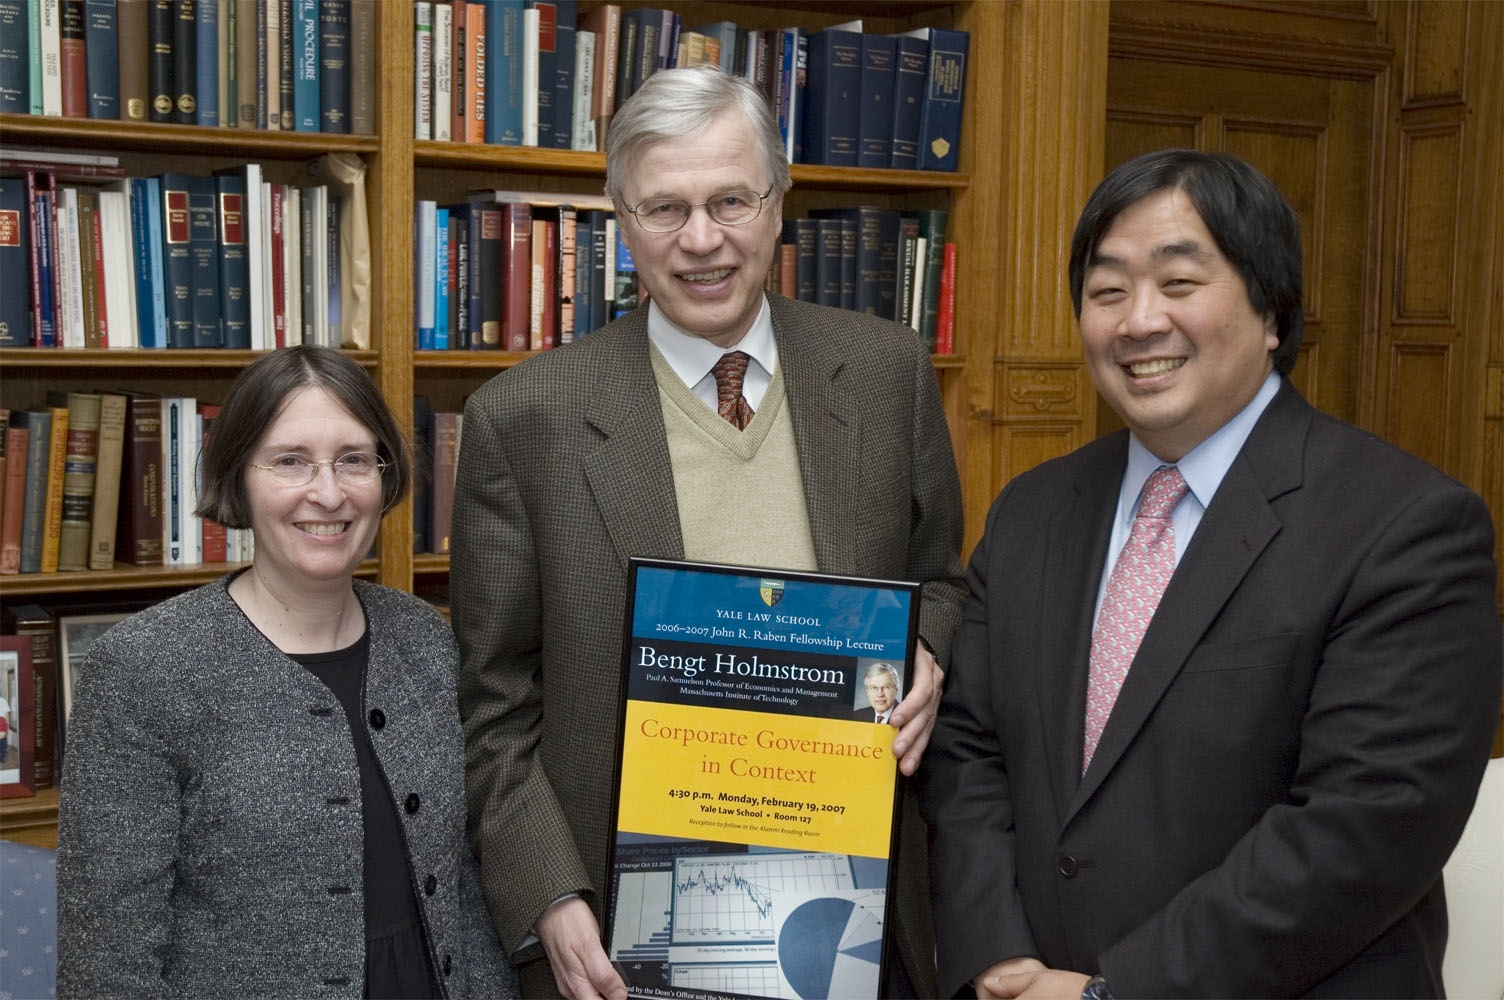 YLS Prof. and Center Dir. Roberta Romano '80, MIT Econ. Prof. Bengt Holmstrom, and YLS Dean Harold Koh